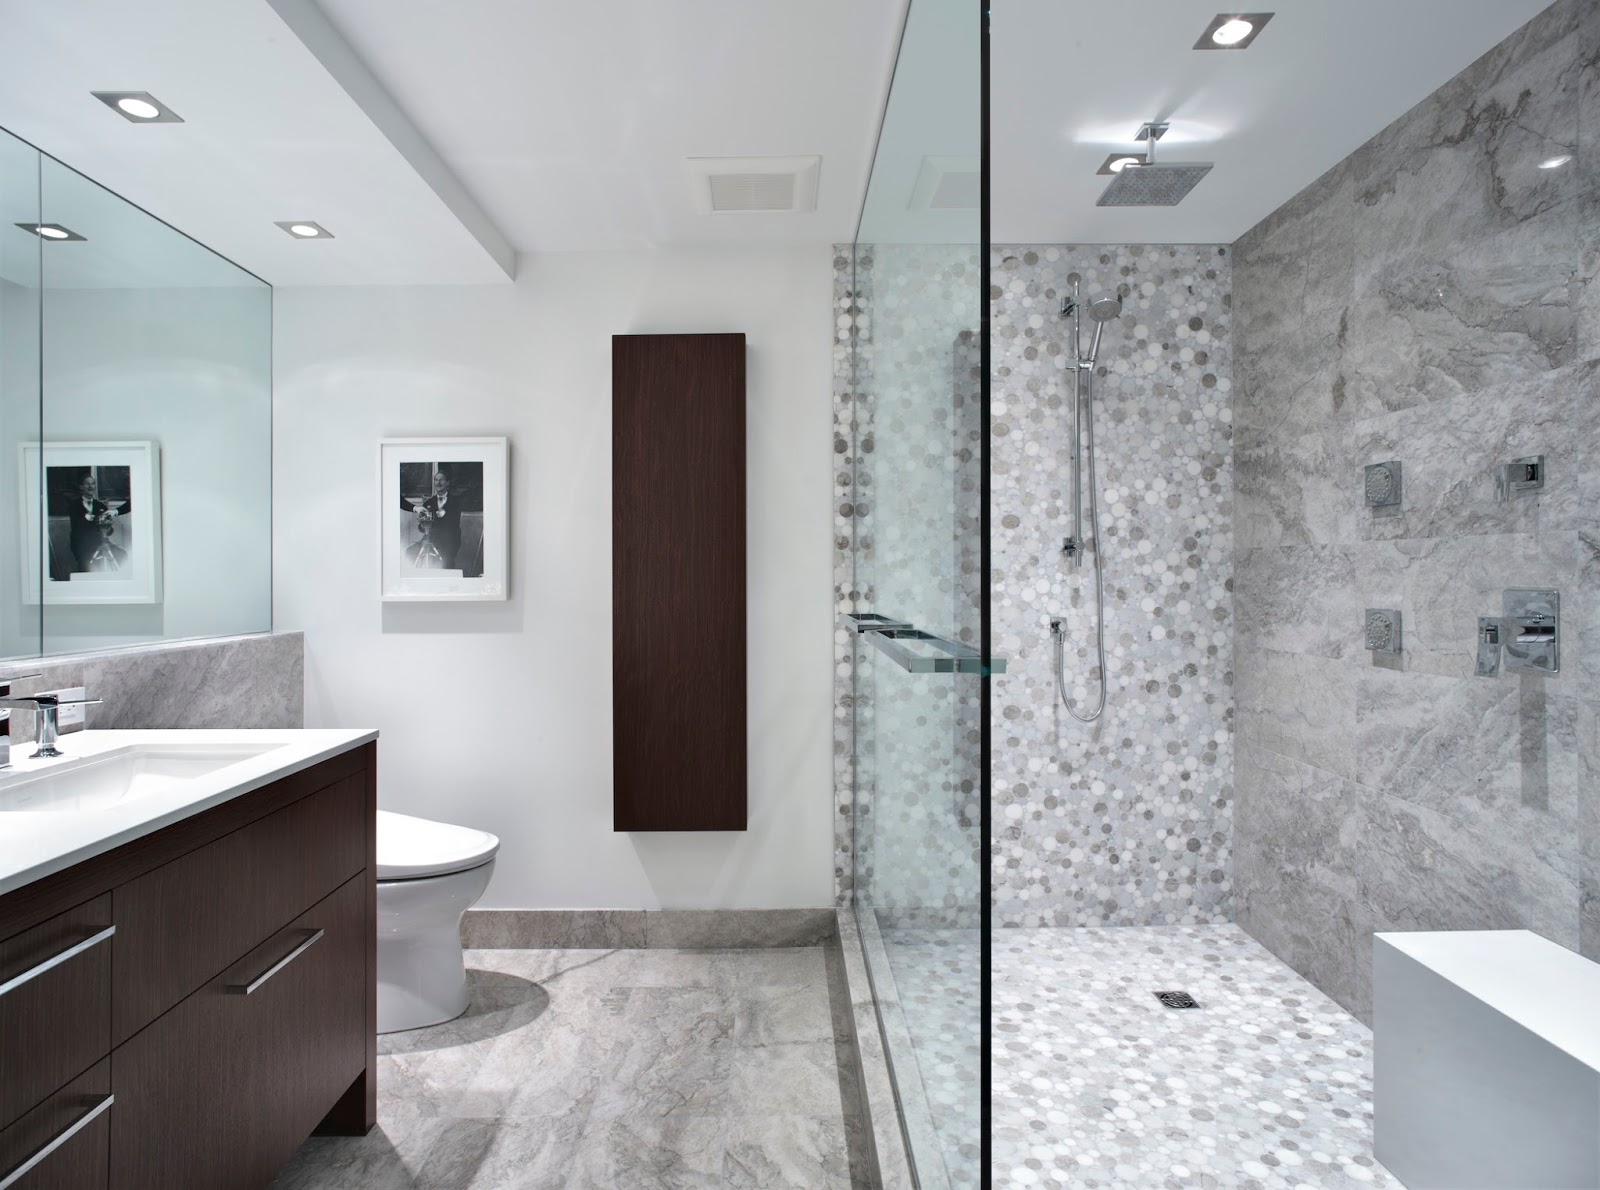 Patricia gray interior design blog 1st place 39 best for Best ensuite designs